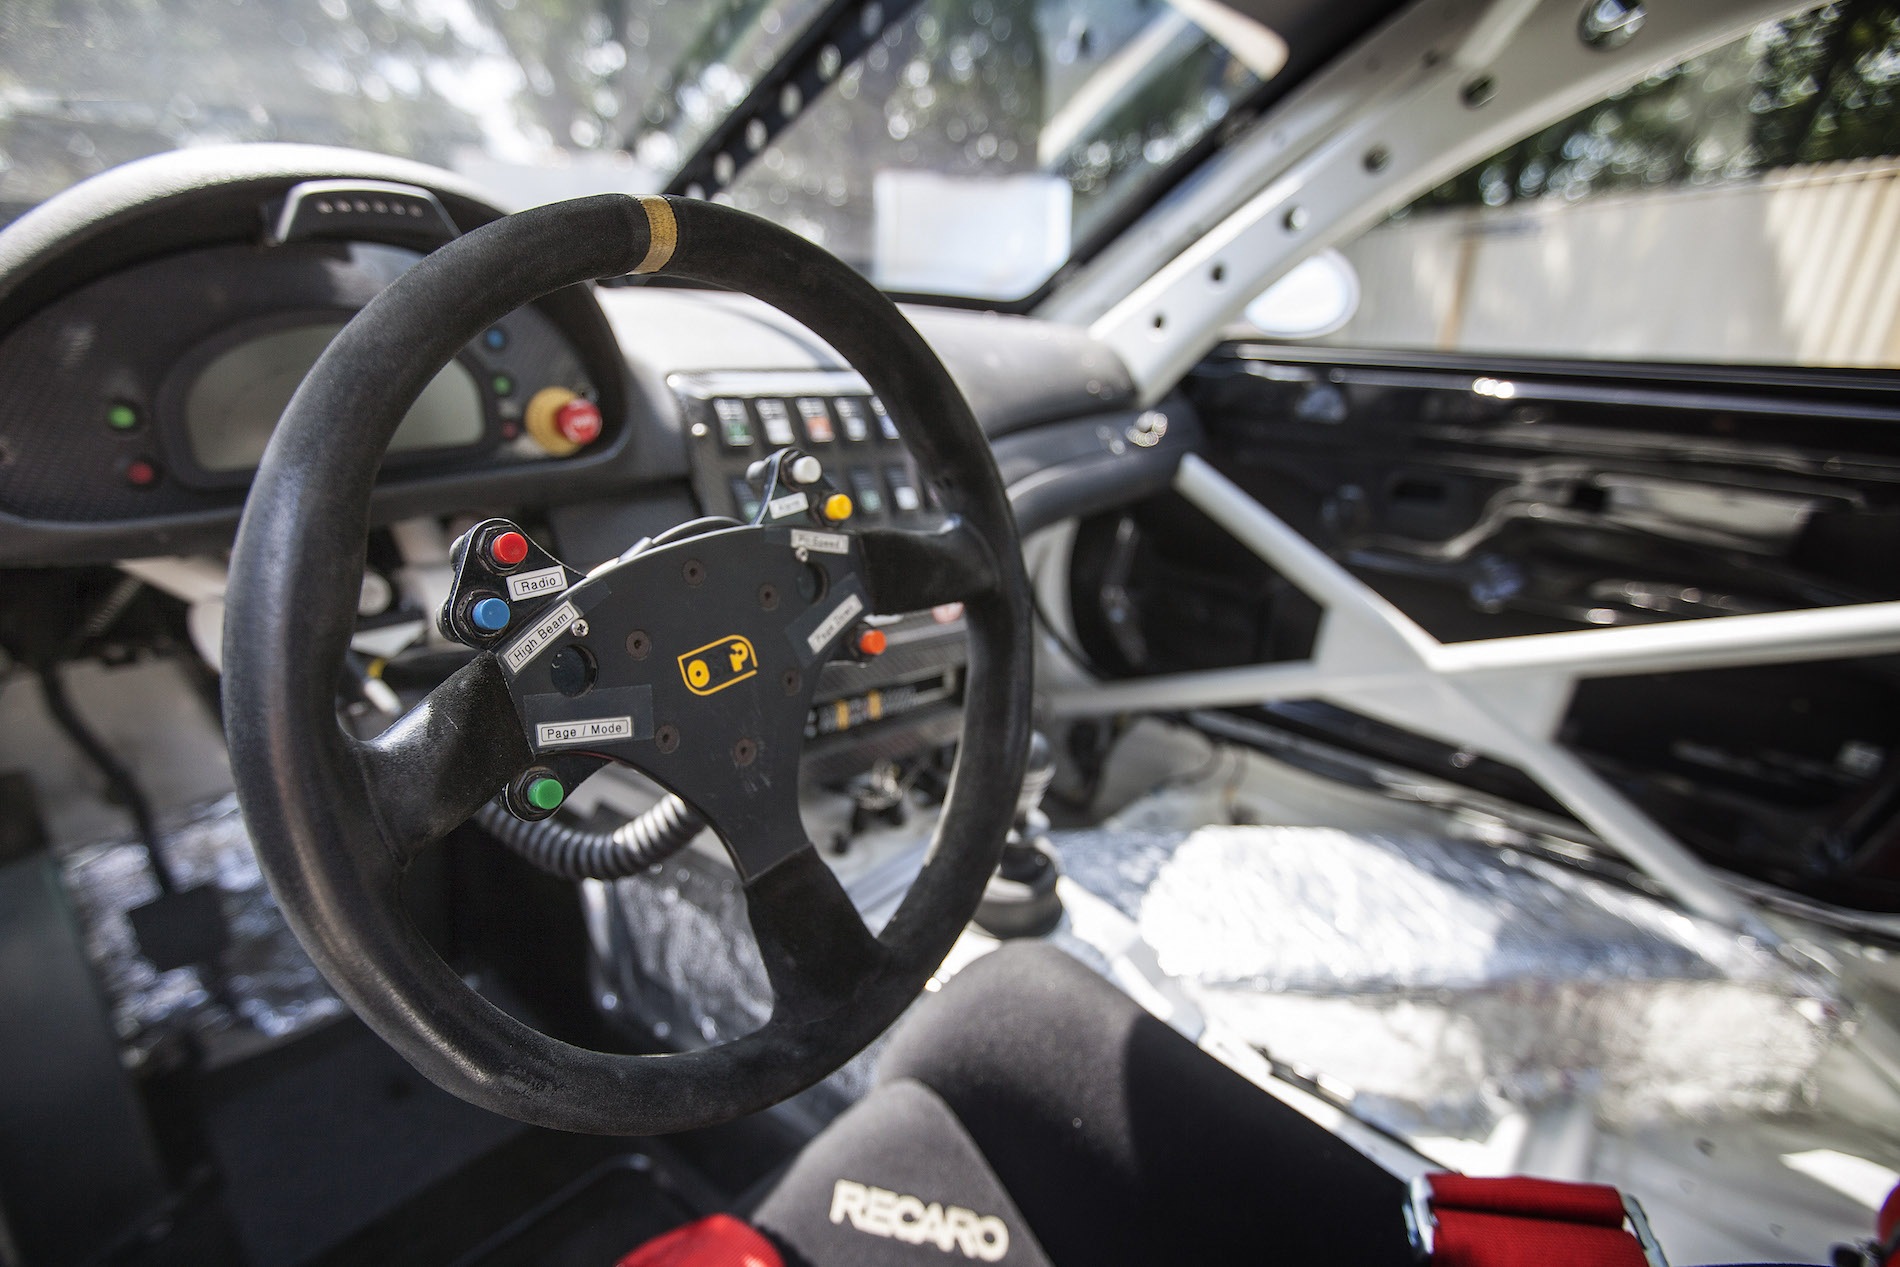 e46 m3 gtr race and road car presented at pebble beach live photos added. Black Bedroom Furniture Sets. Home Design Ideas